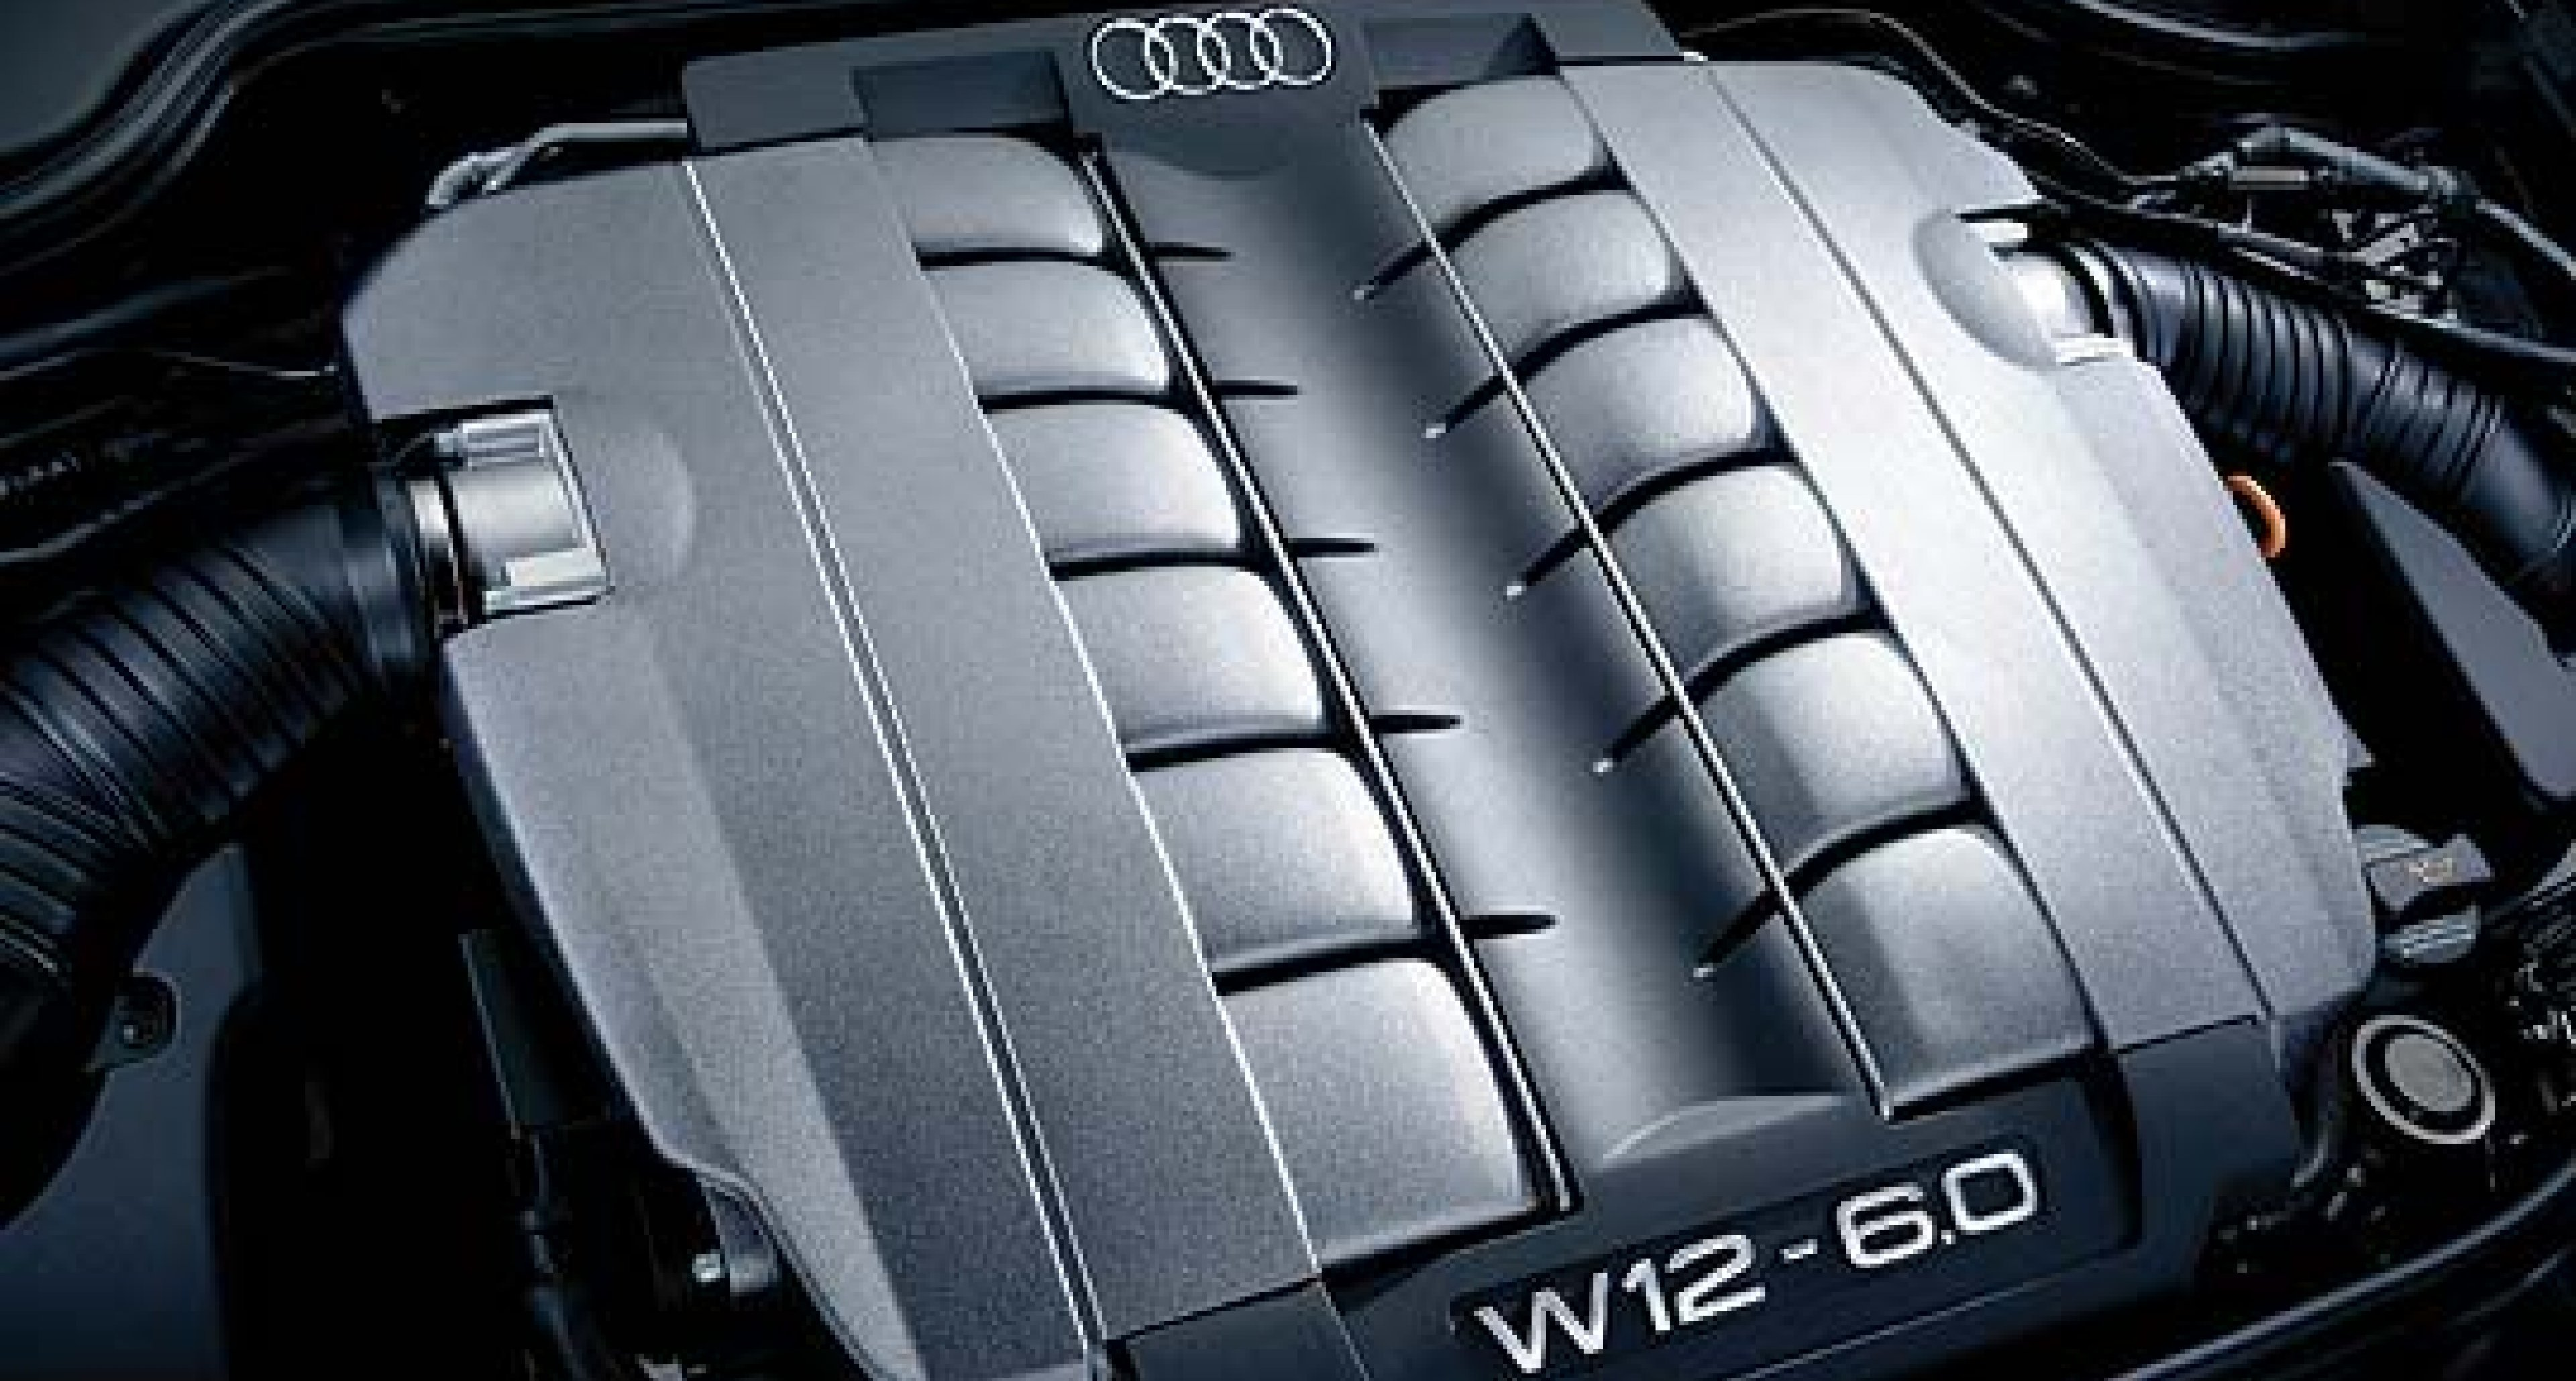 First 12-cylinder engine for the UK creates a new Audi super saloon